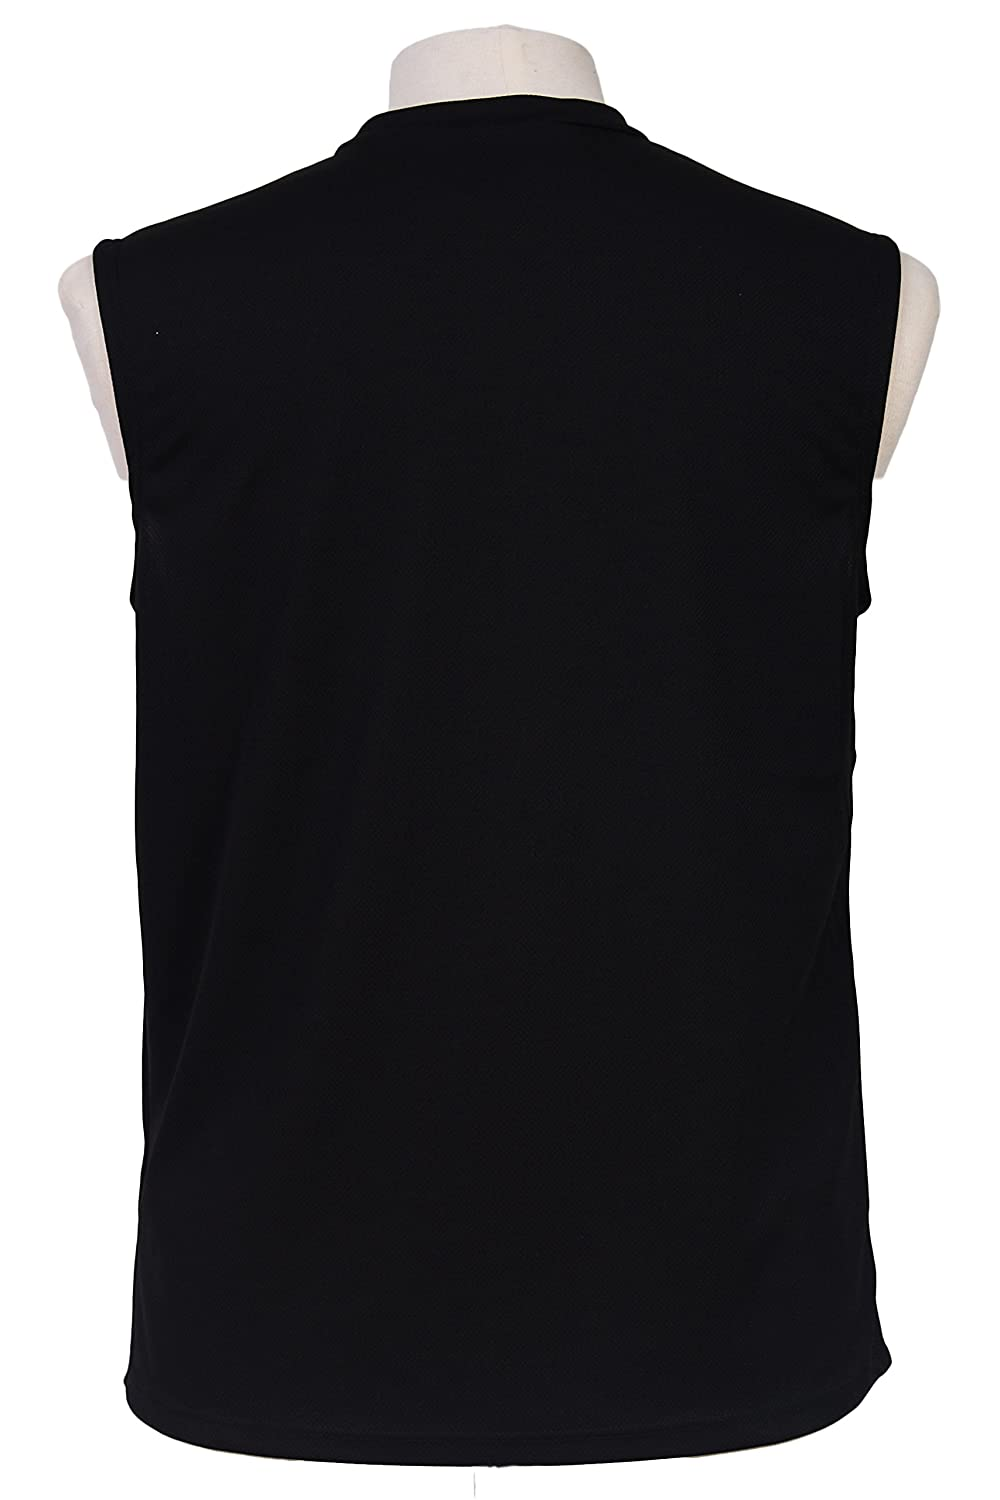 9fe0af99f Amazon.com: Men's Mesh Dri Fit Light Weight Sleeveless Shirt Workout Gym  Made in The USA: Clothing